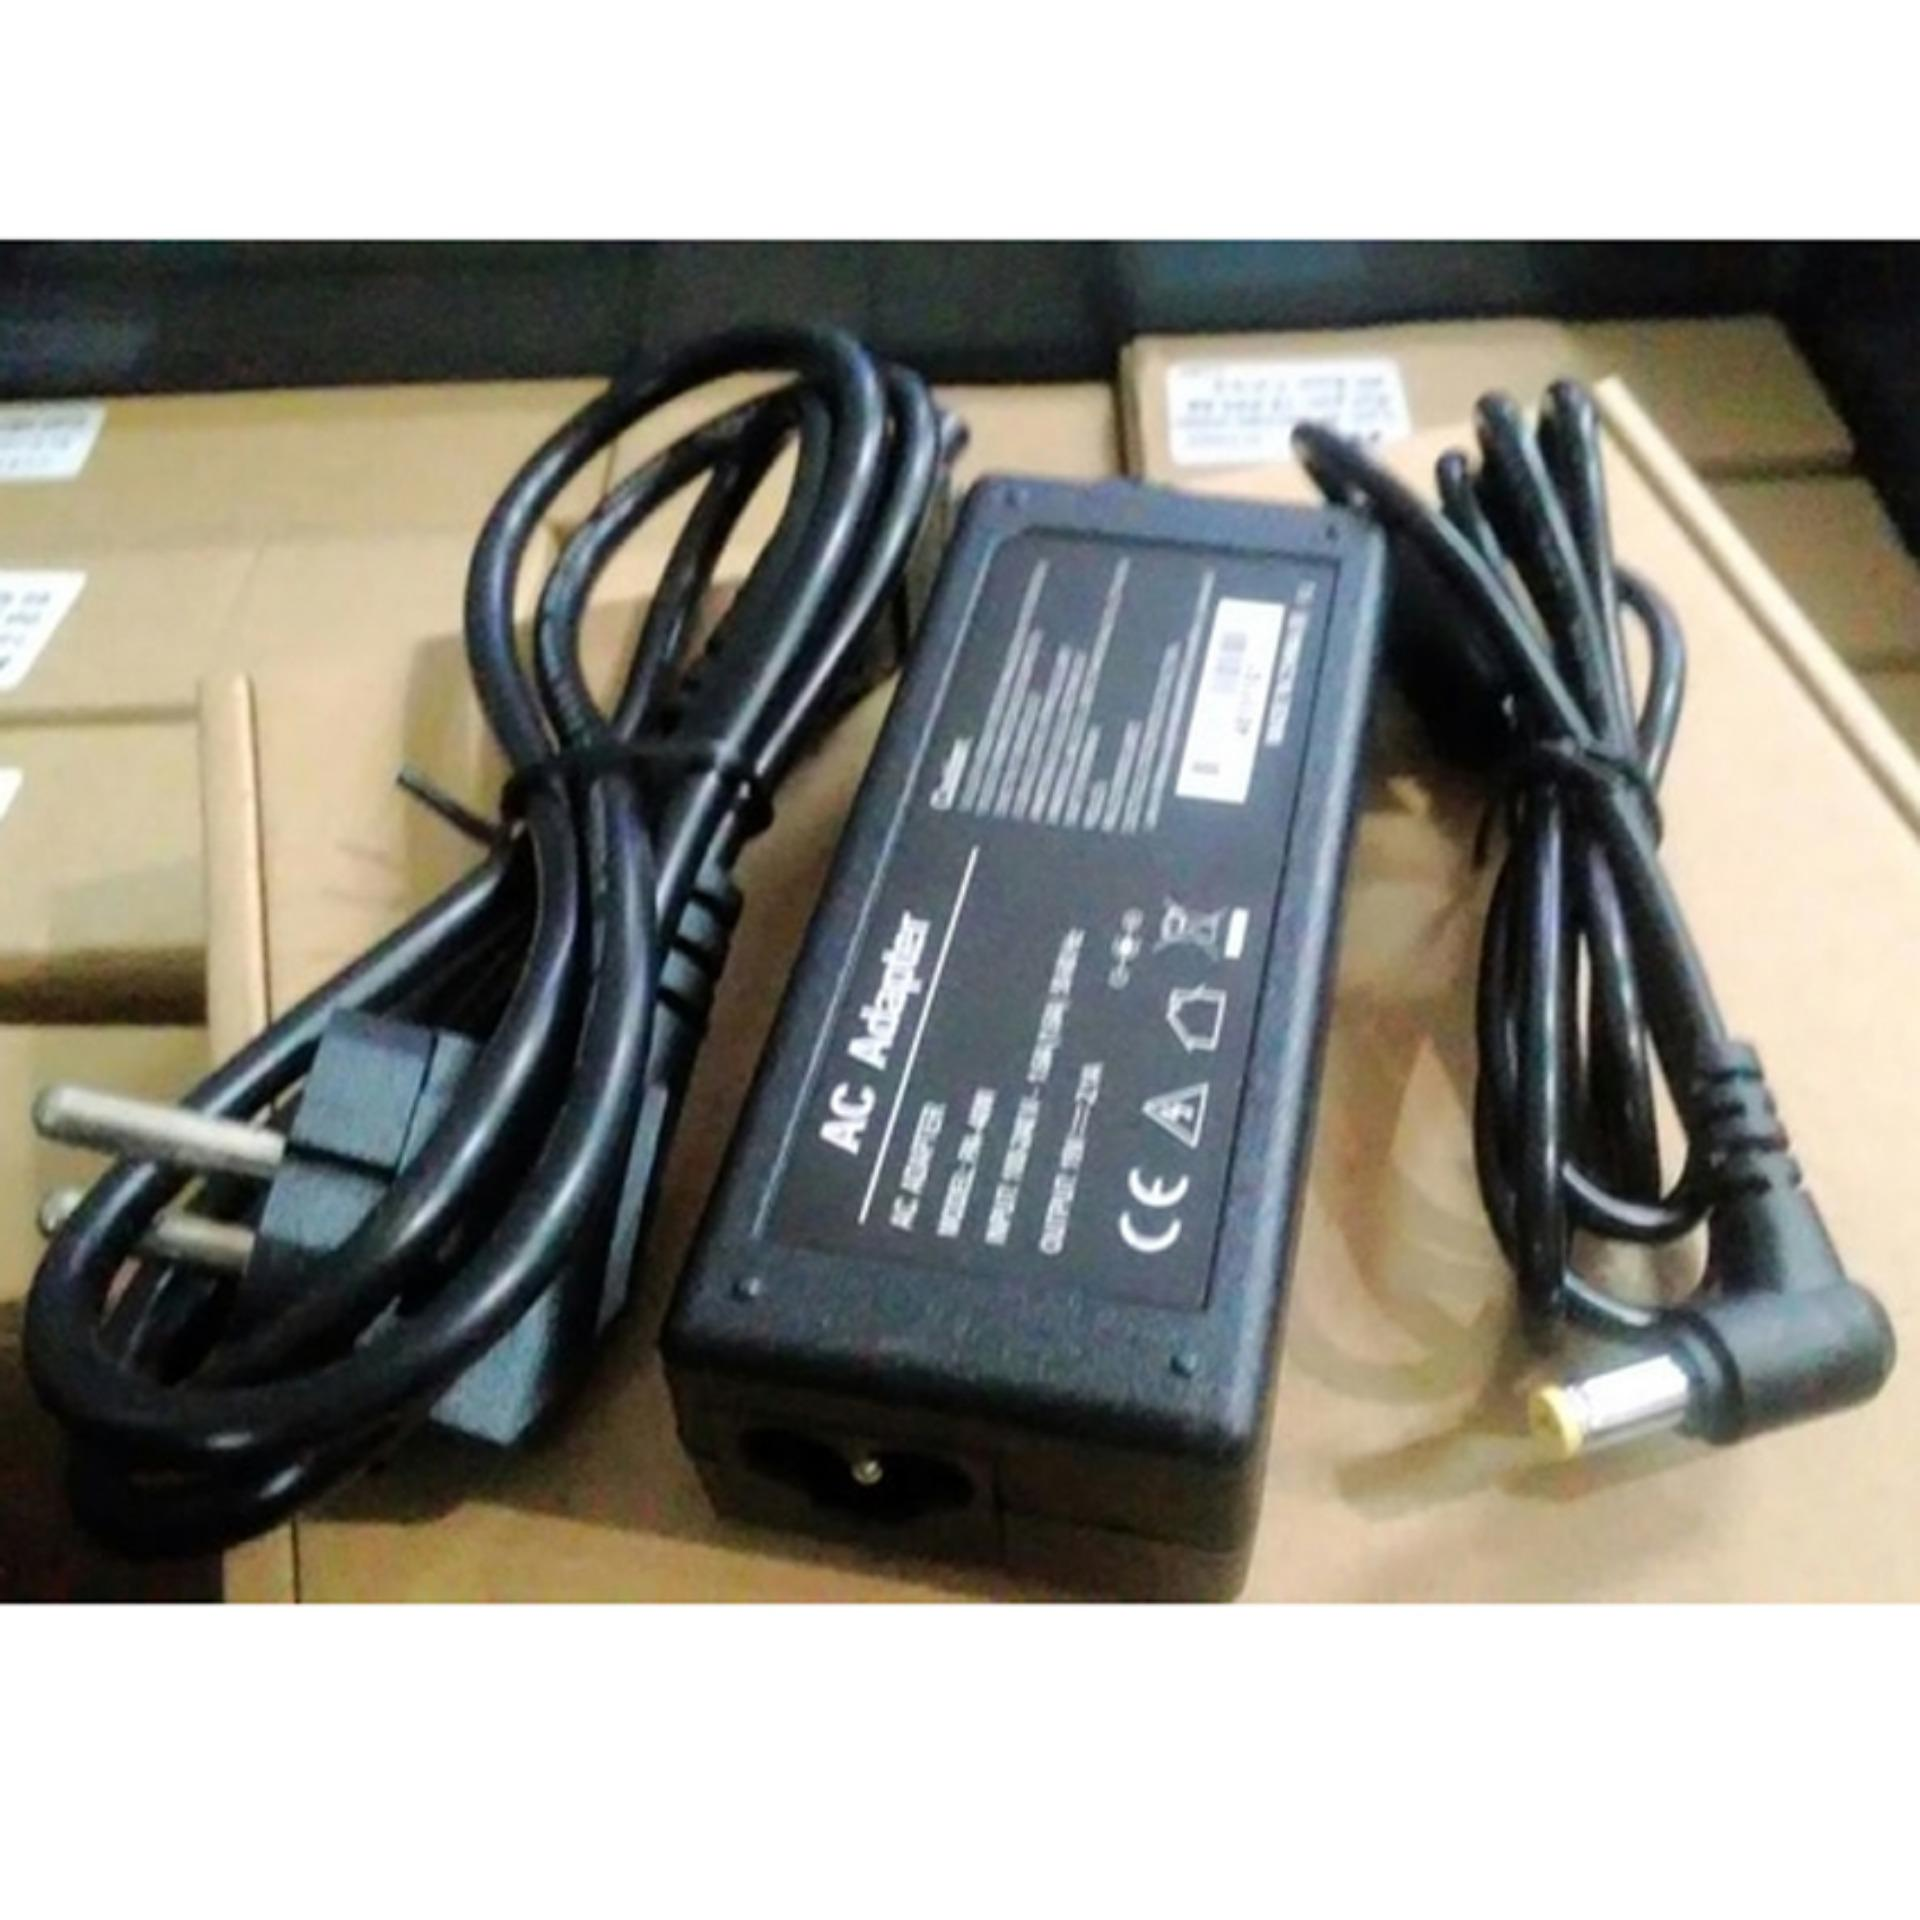 Adaptor Charger Laptop Notebook Acer 19v 21a 55mm17mm 1248 Daftar One 14 Z1401 Z1402 55mm 25mm Ori